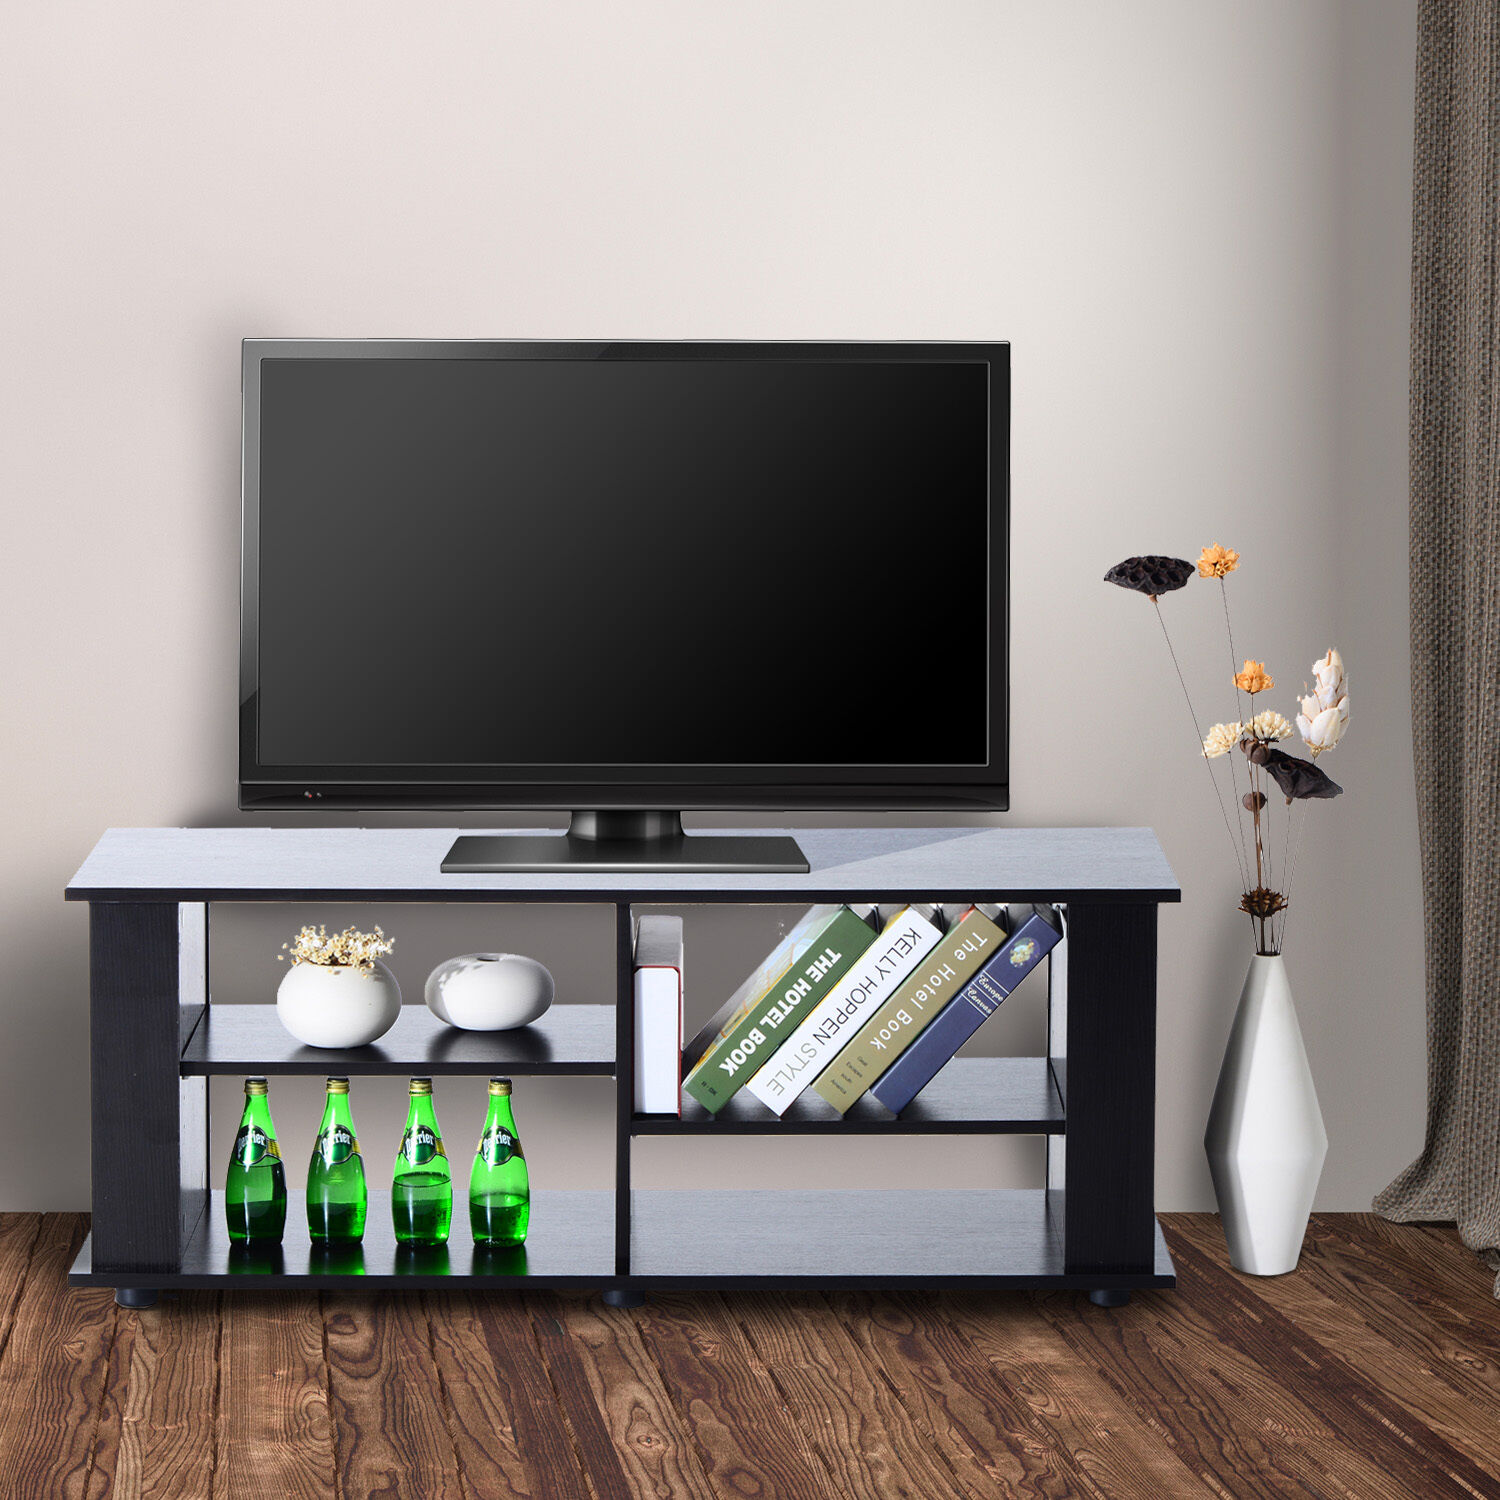 homcom tv lowboard board schrank tisch fernsehtisch regal holz schwarz eur 40 90 picclick de. Black Bedroom Furniture Sets. Home Design Ideas